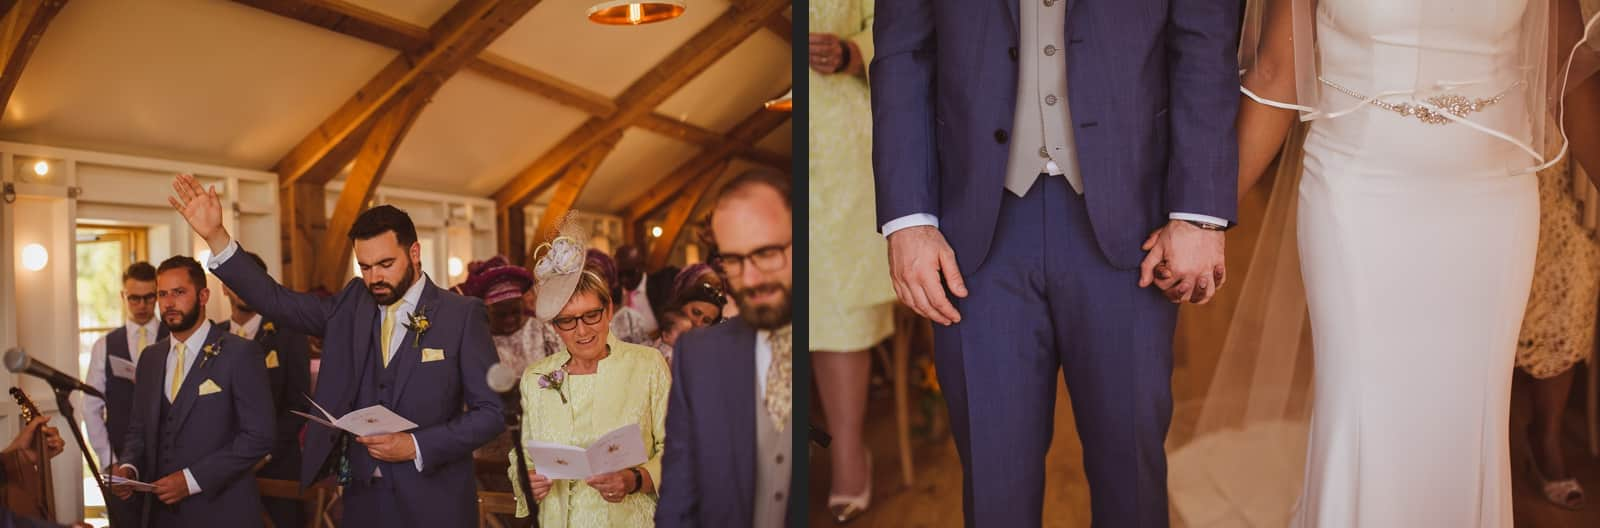 Cotswolds Wedding Photographer 0069